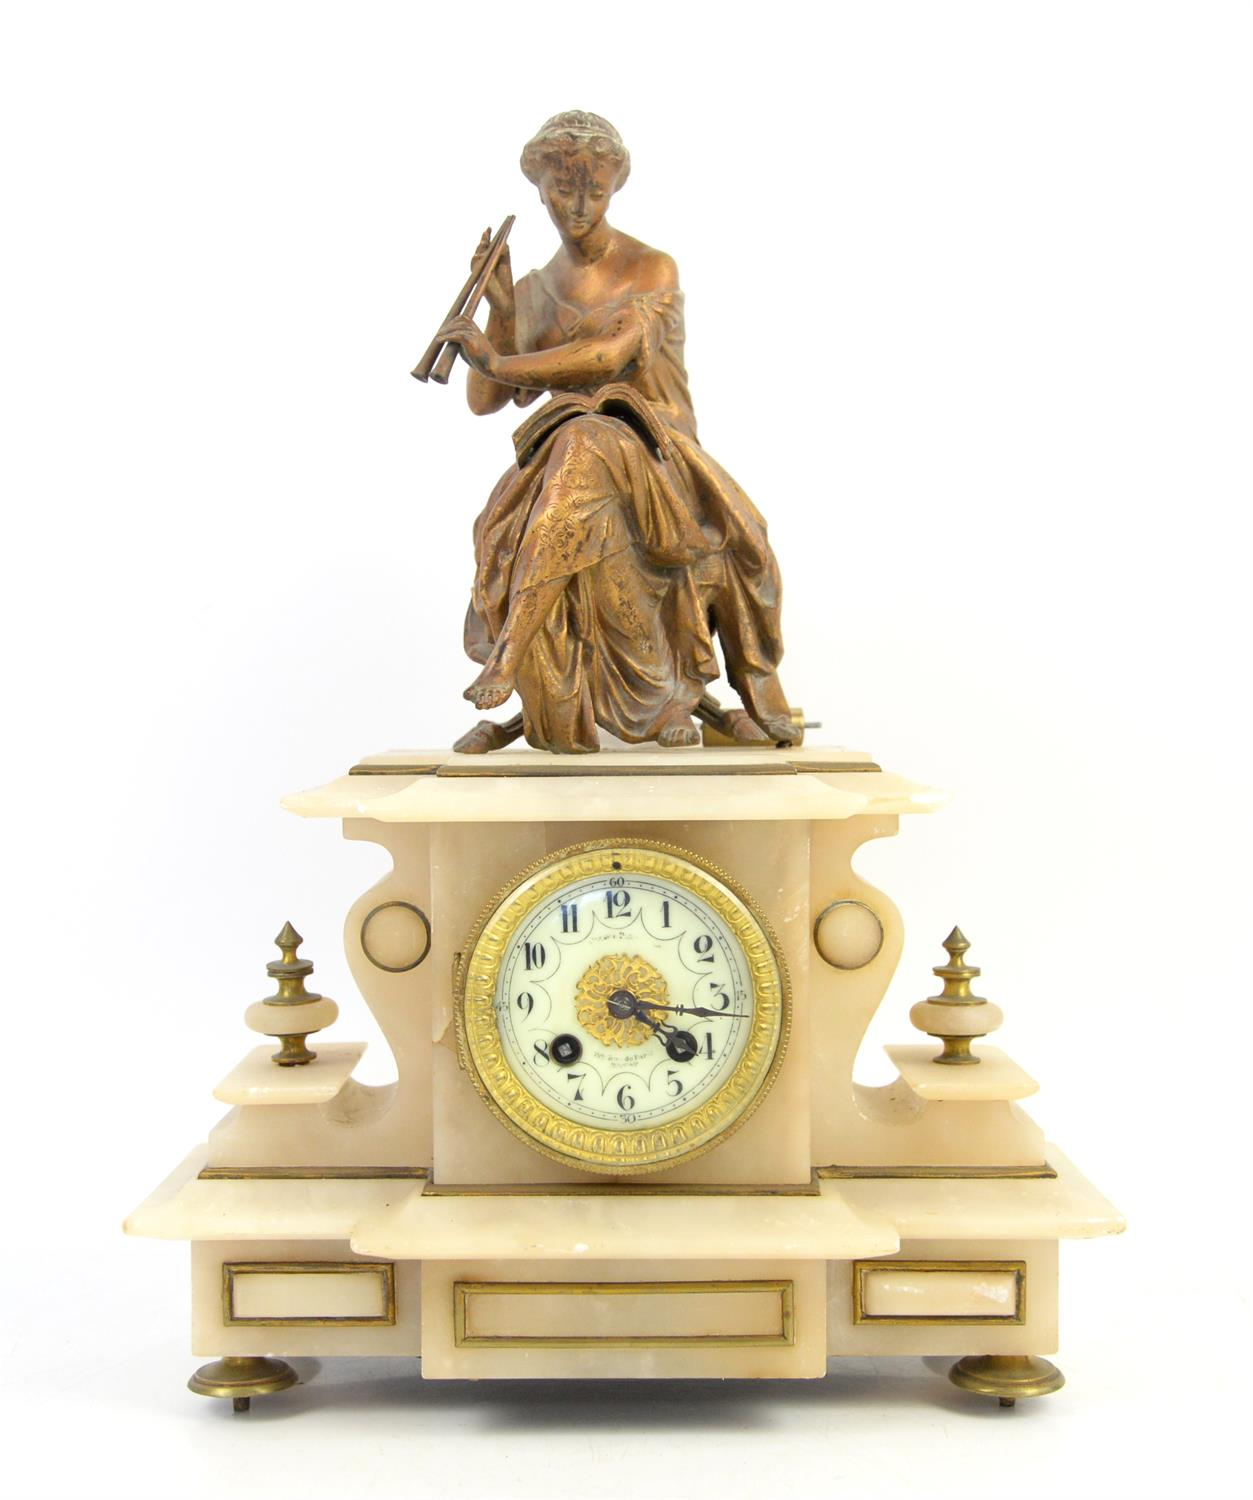 French alabaster mantel clock with spelter figure of a classical lady playing music,